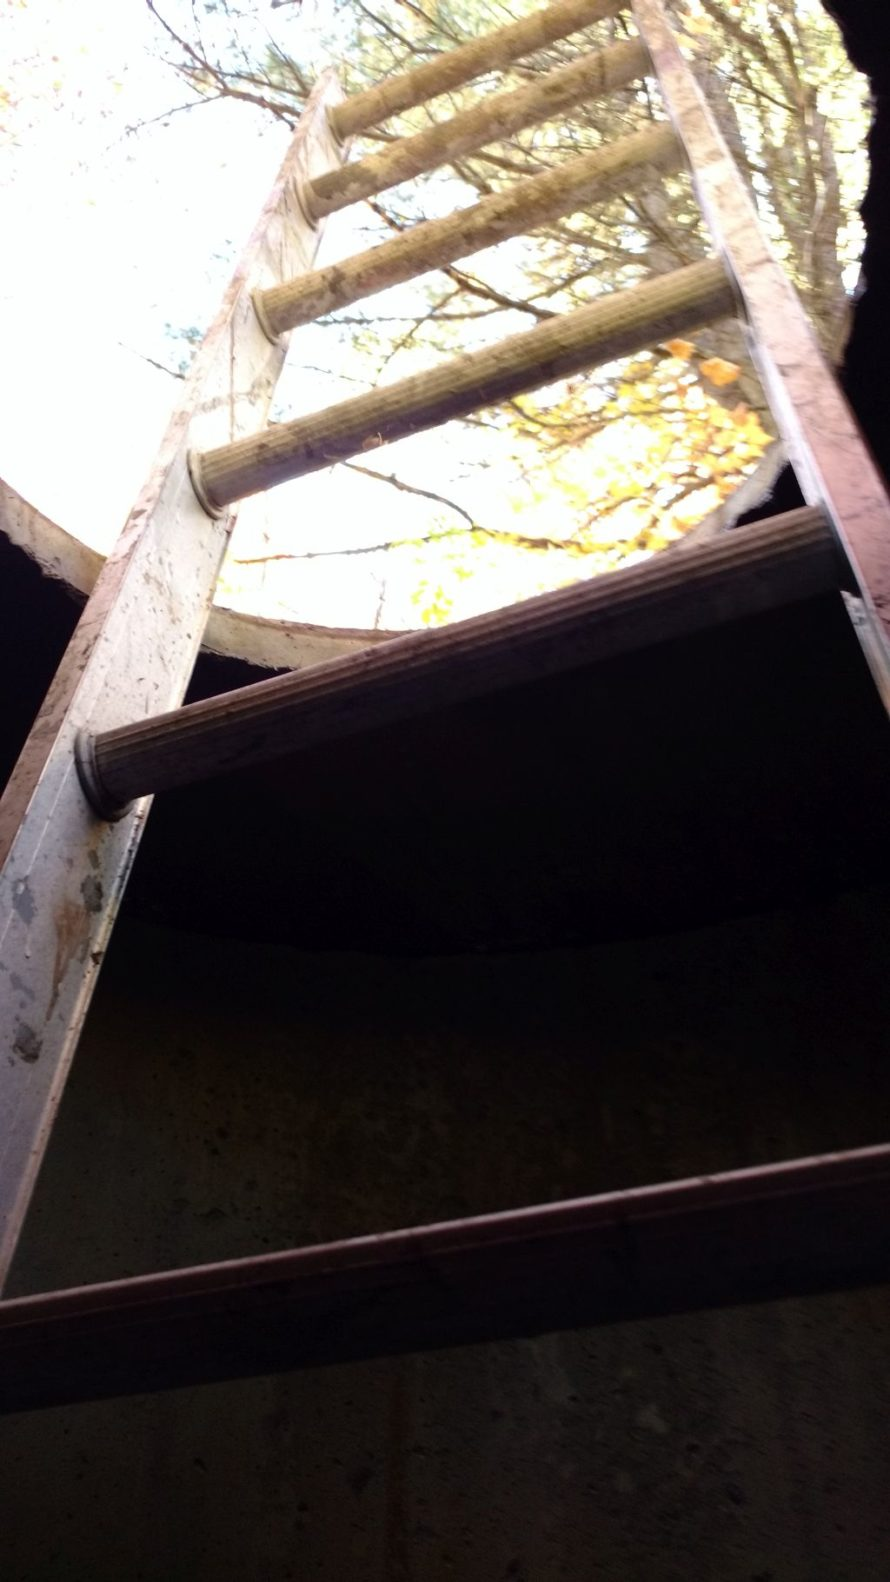 In my well, looking towards the sky.